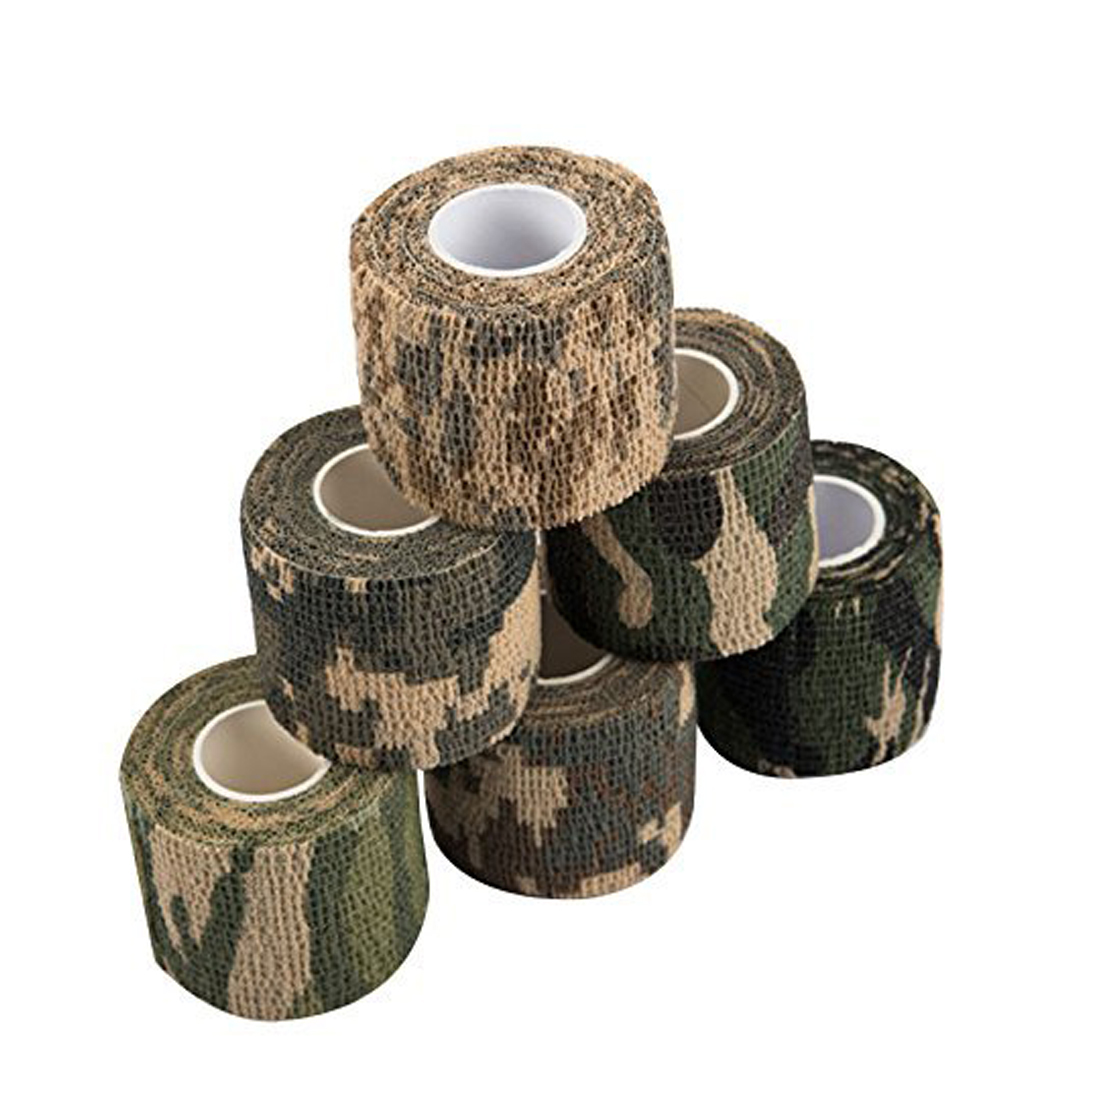 EONBON Free Samples Self-Adhesive Protective Camouflage camo tape